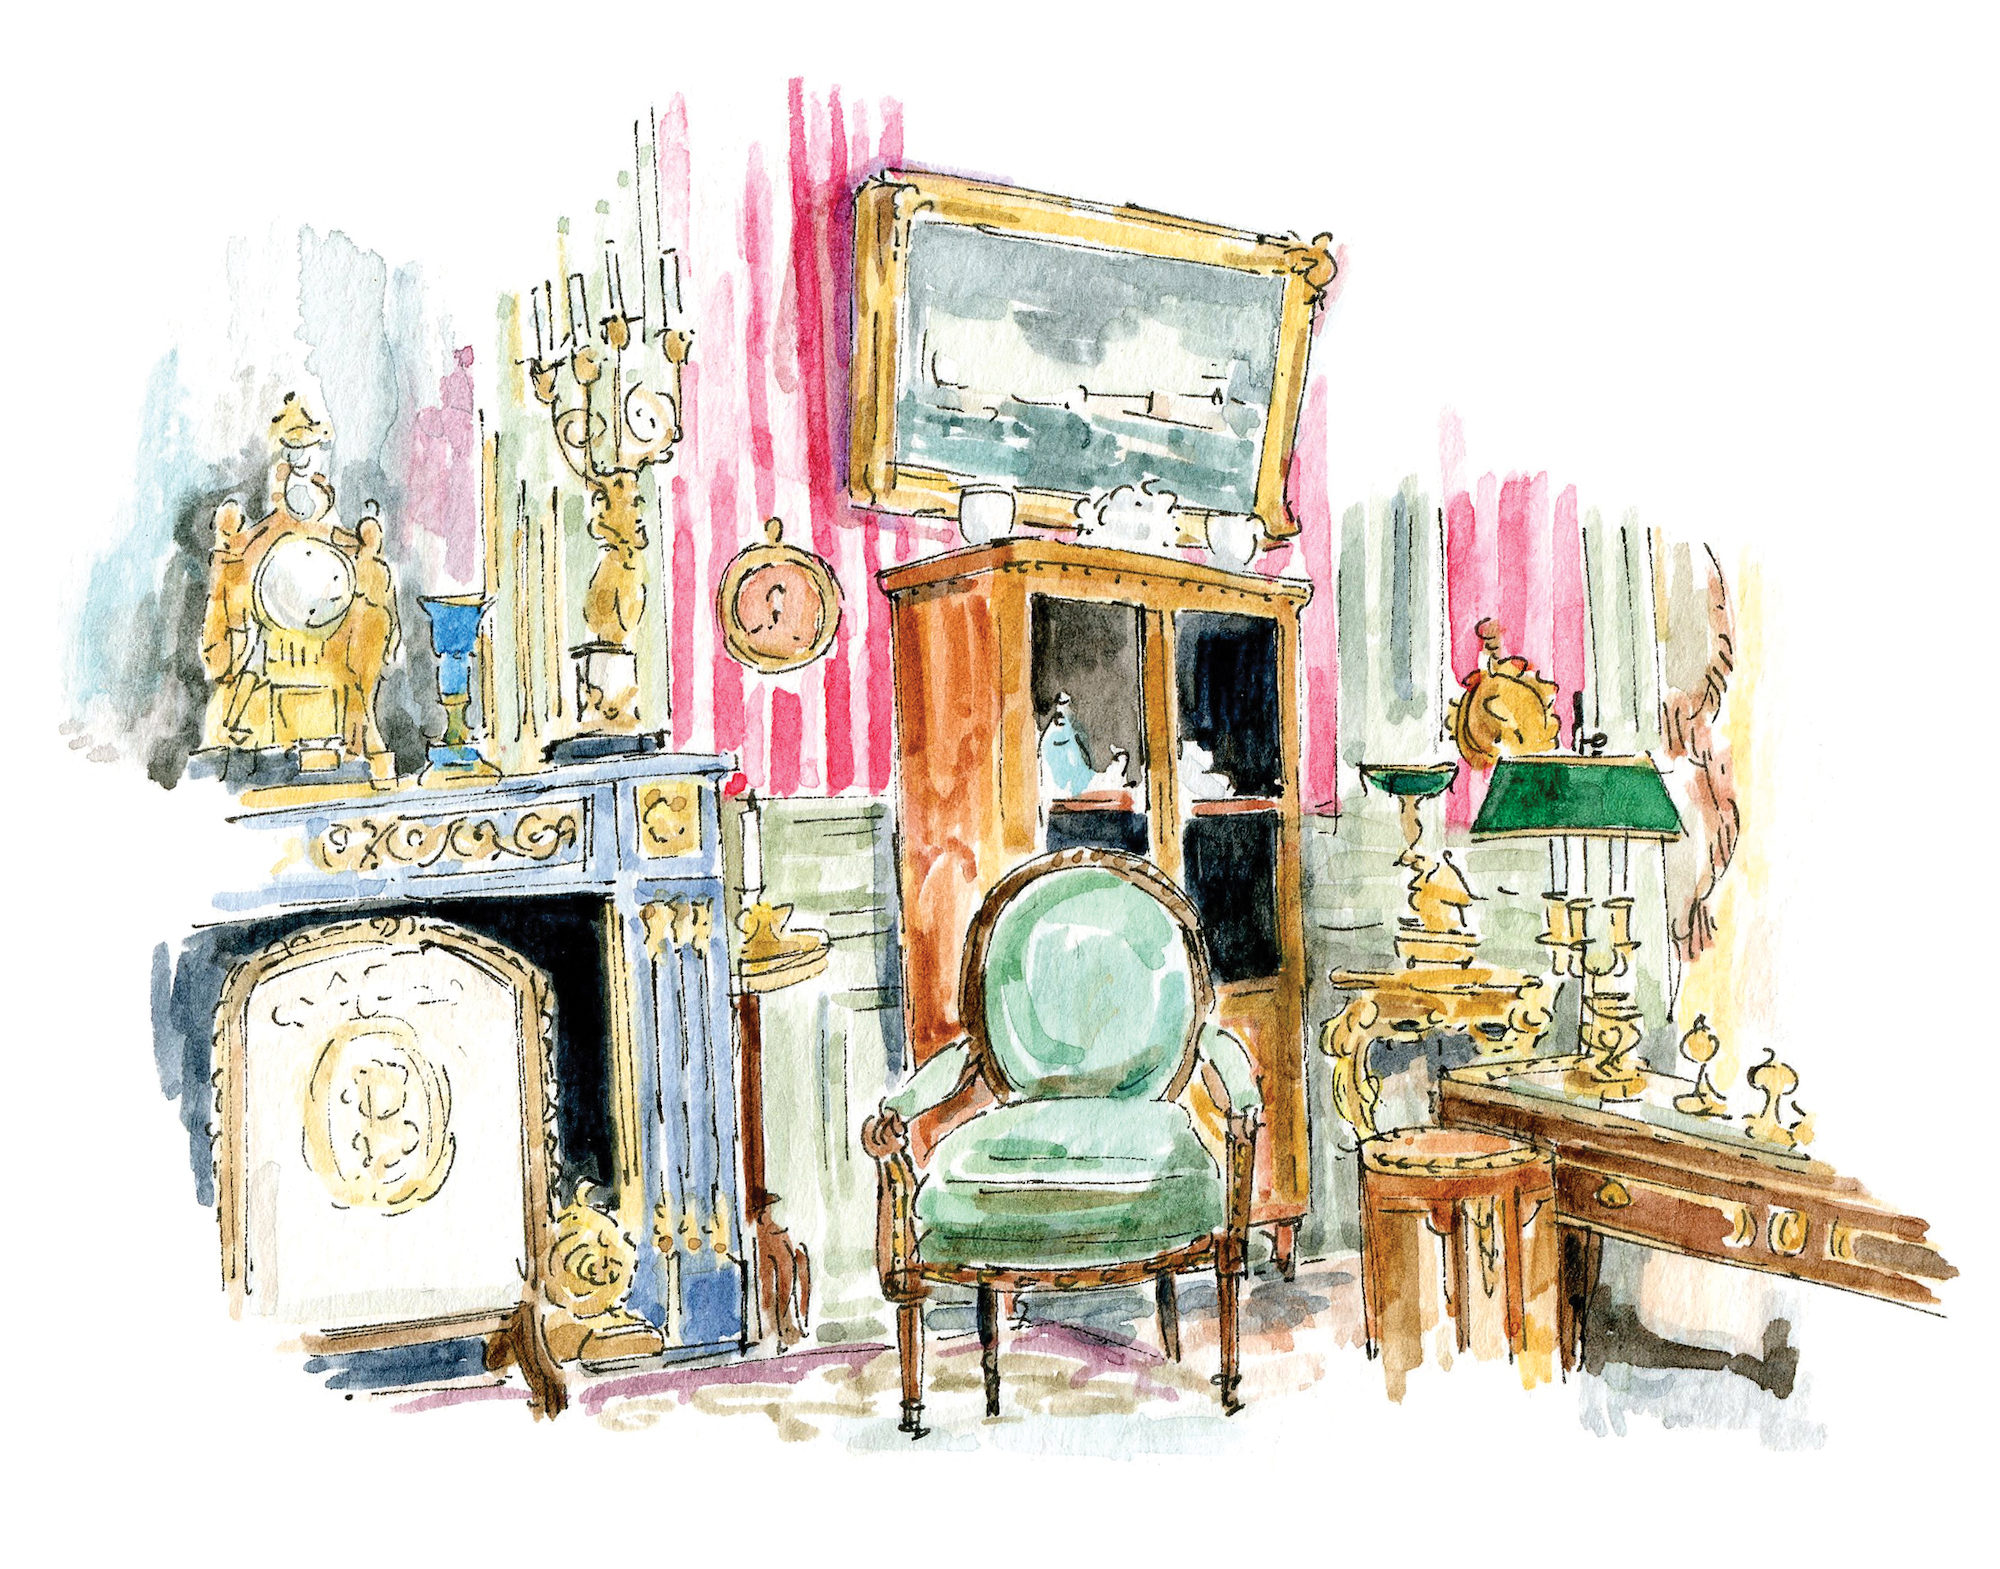 A sketch of a Paris museum from illustrator Emma Jacobs' book Little(r) Museums of Paris.